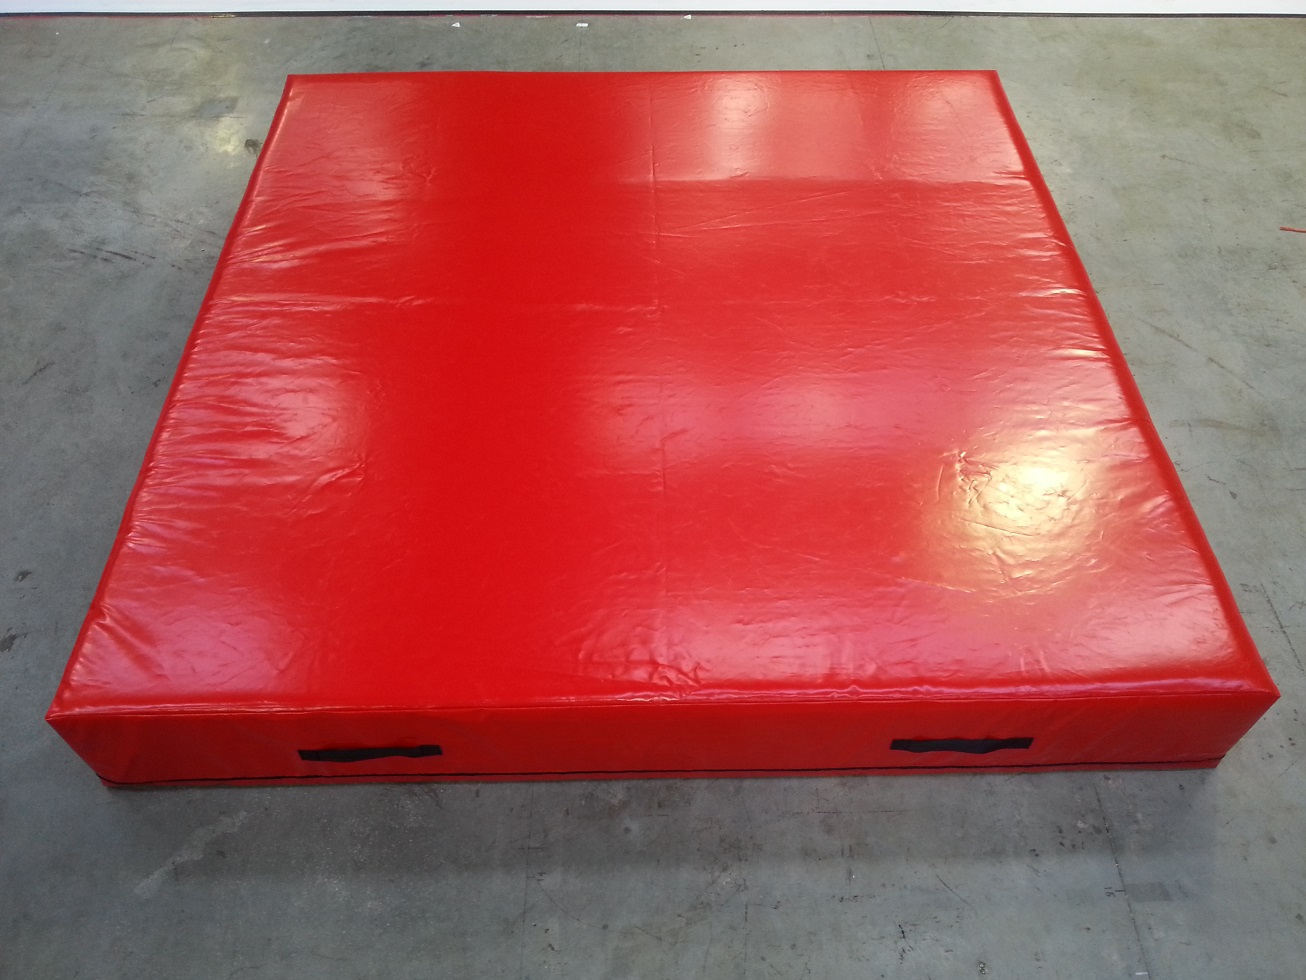 Crash Mats Australia Crash Mats Safety Crash Pads Custom Crash Pads For Australia